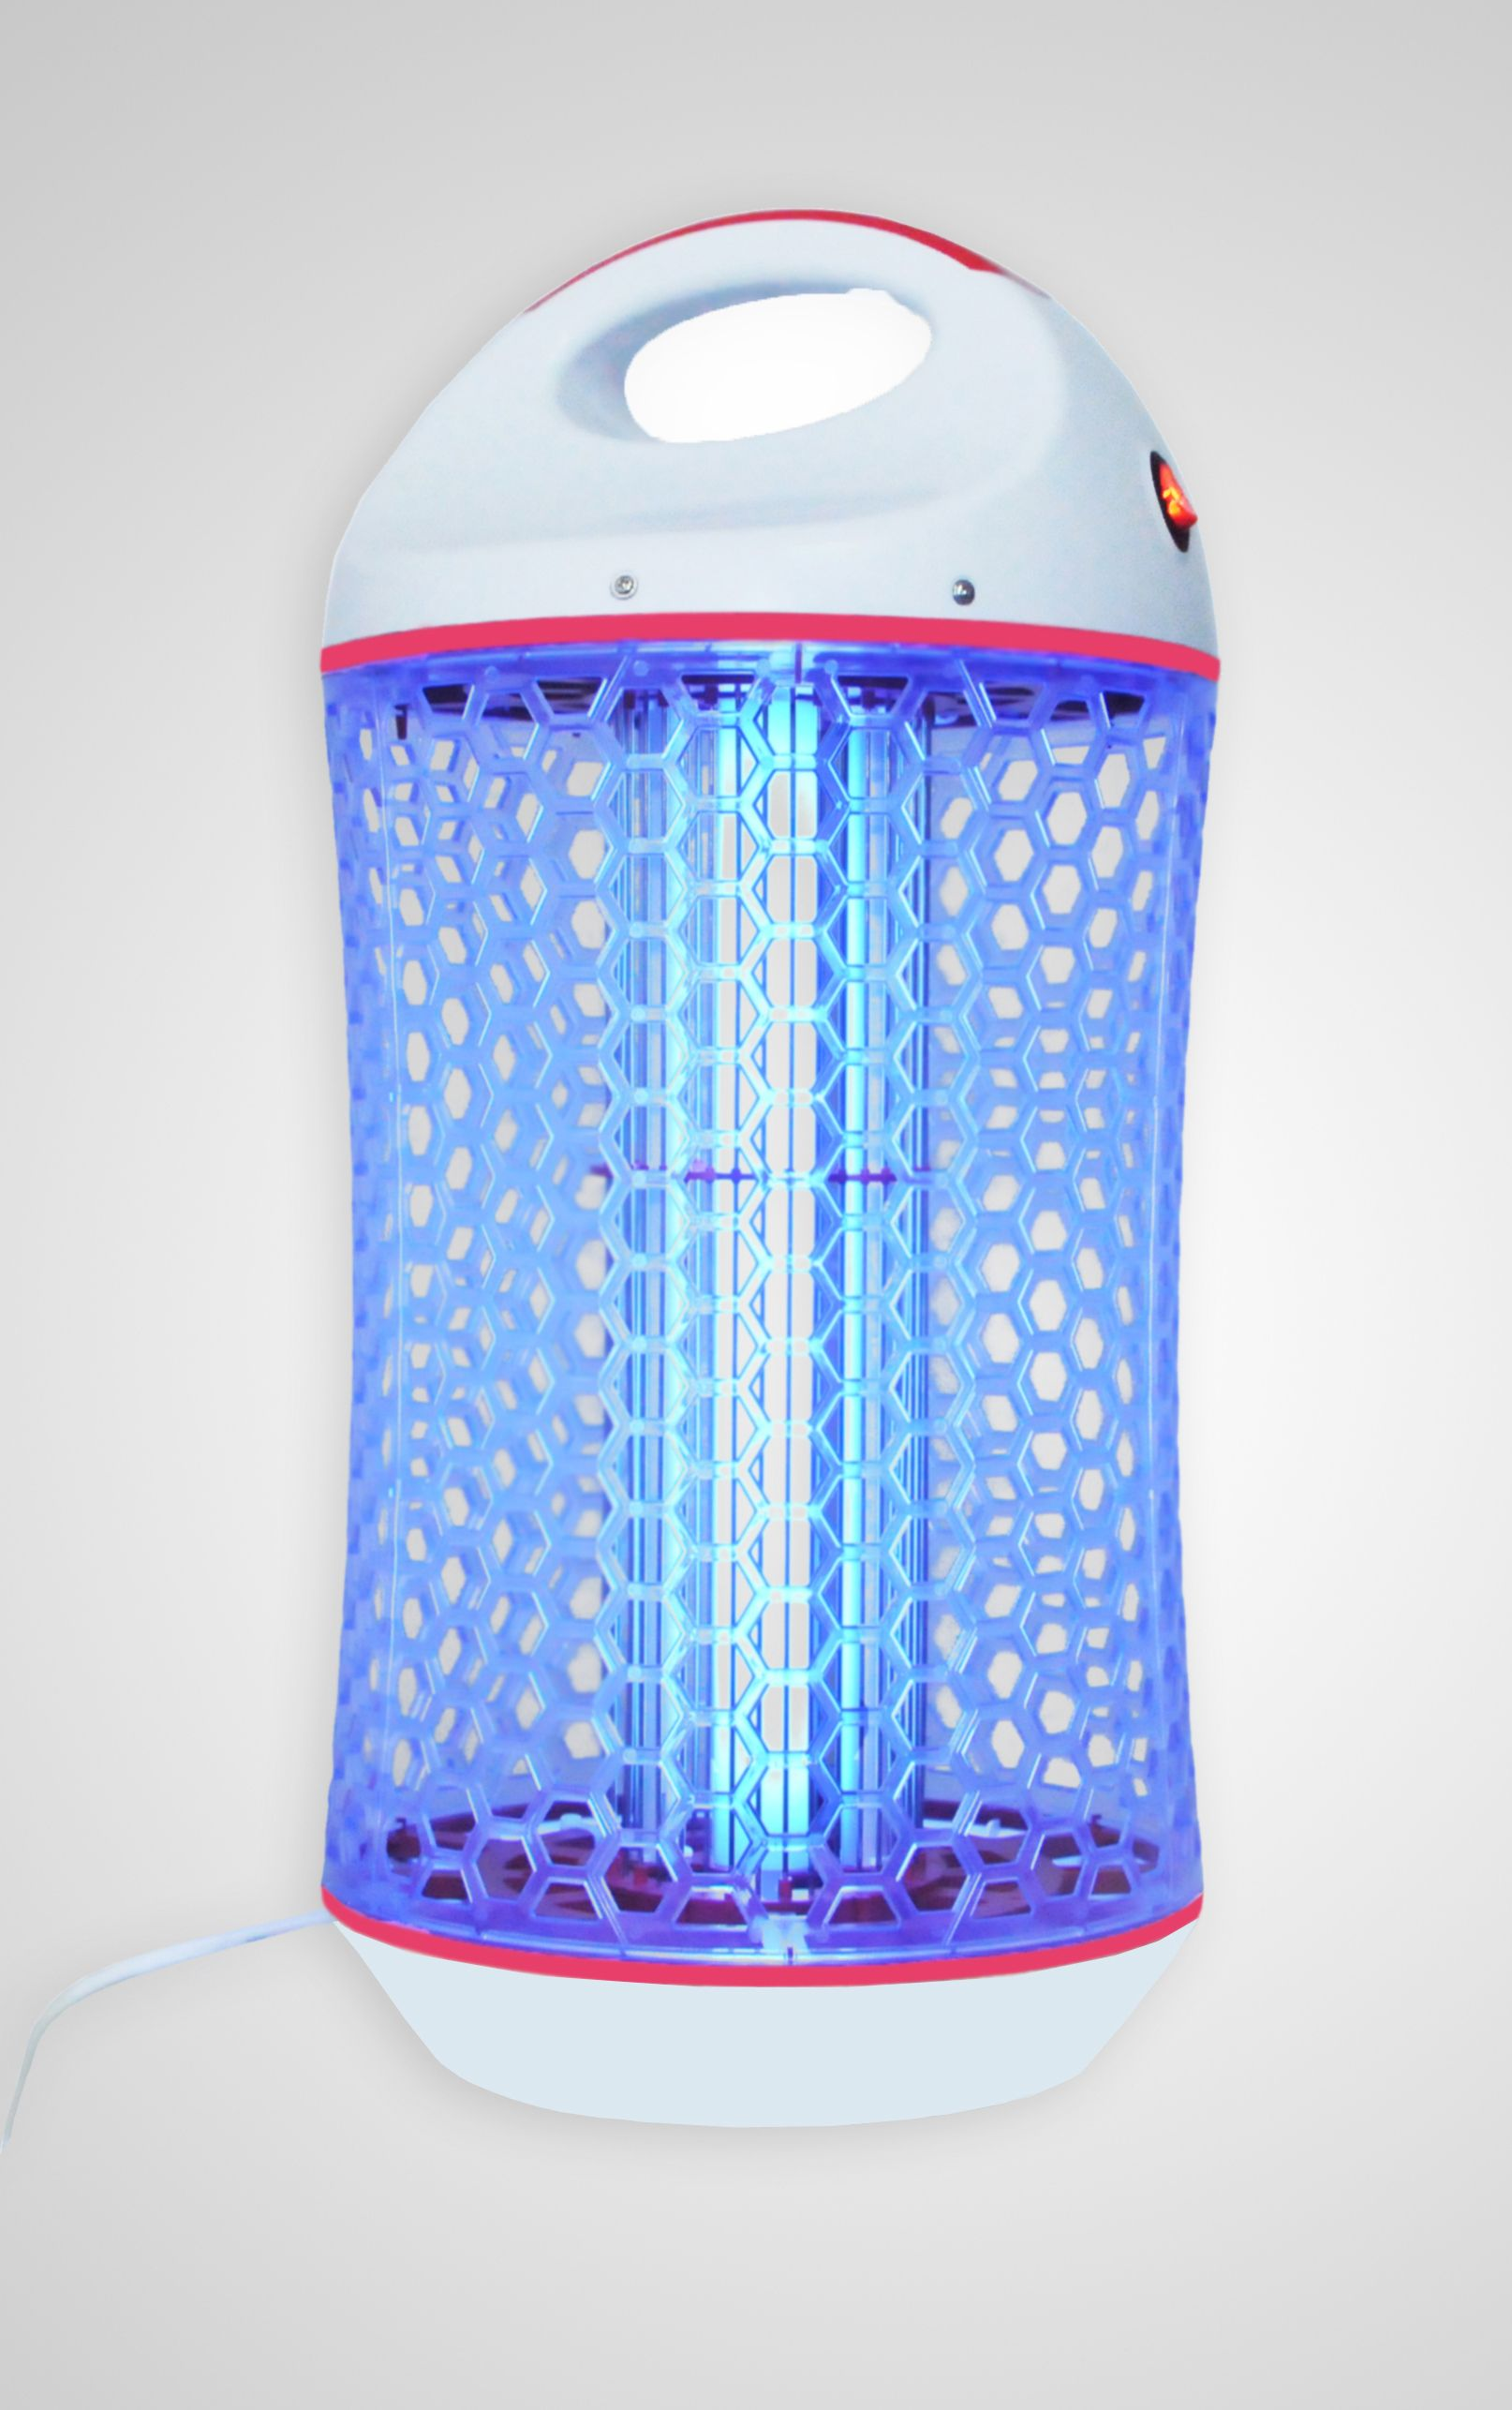 Pin on Household Appliance Electric Mosquito Killer/Zapper